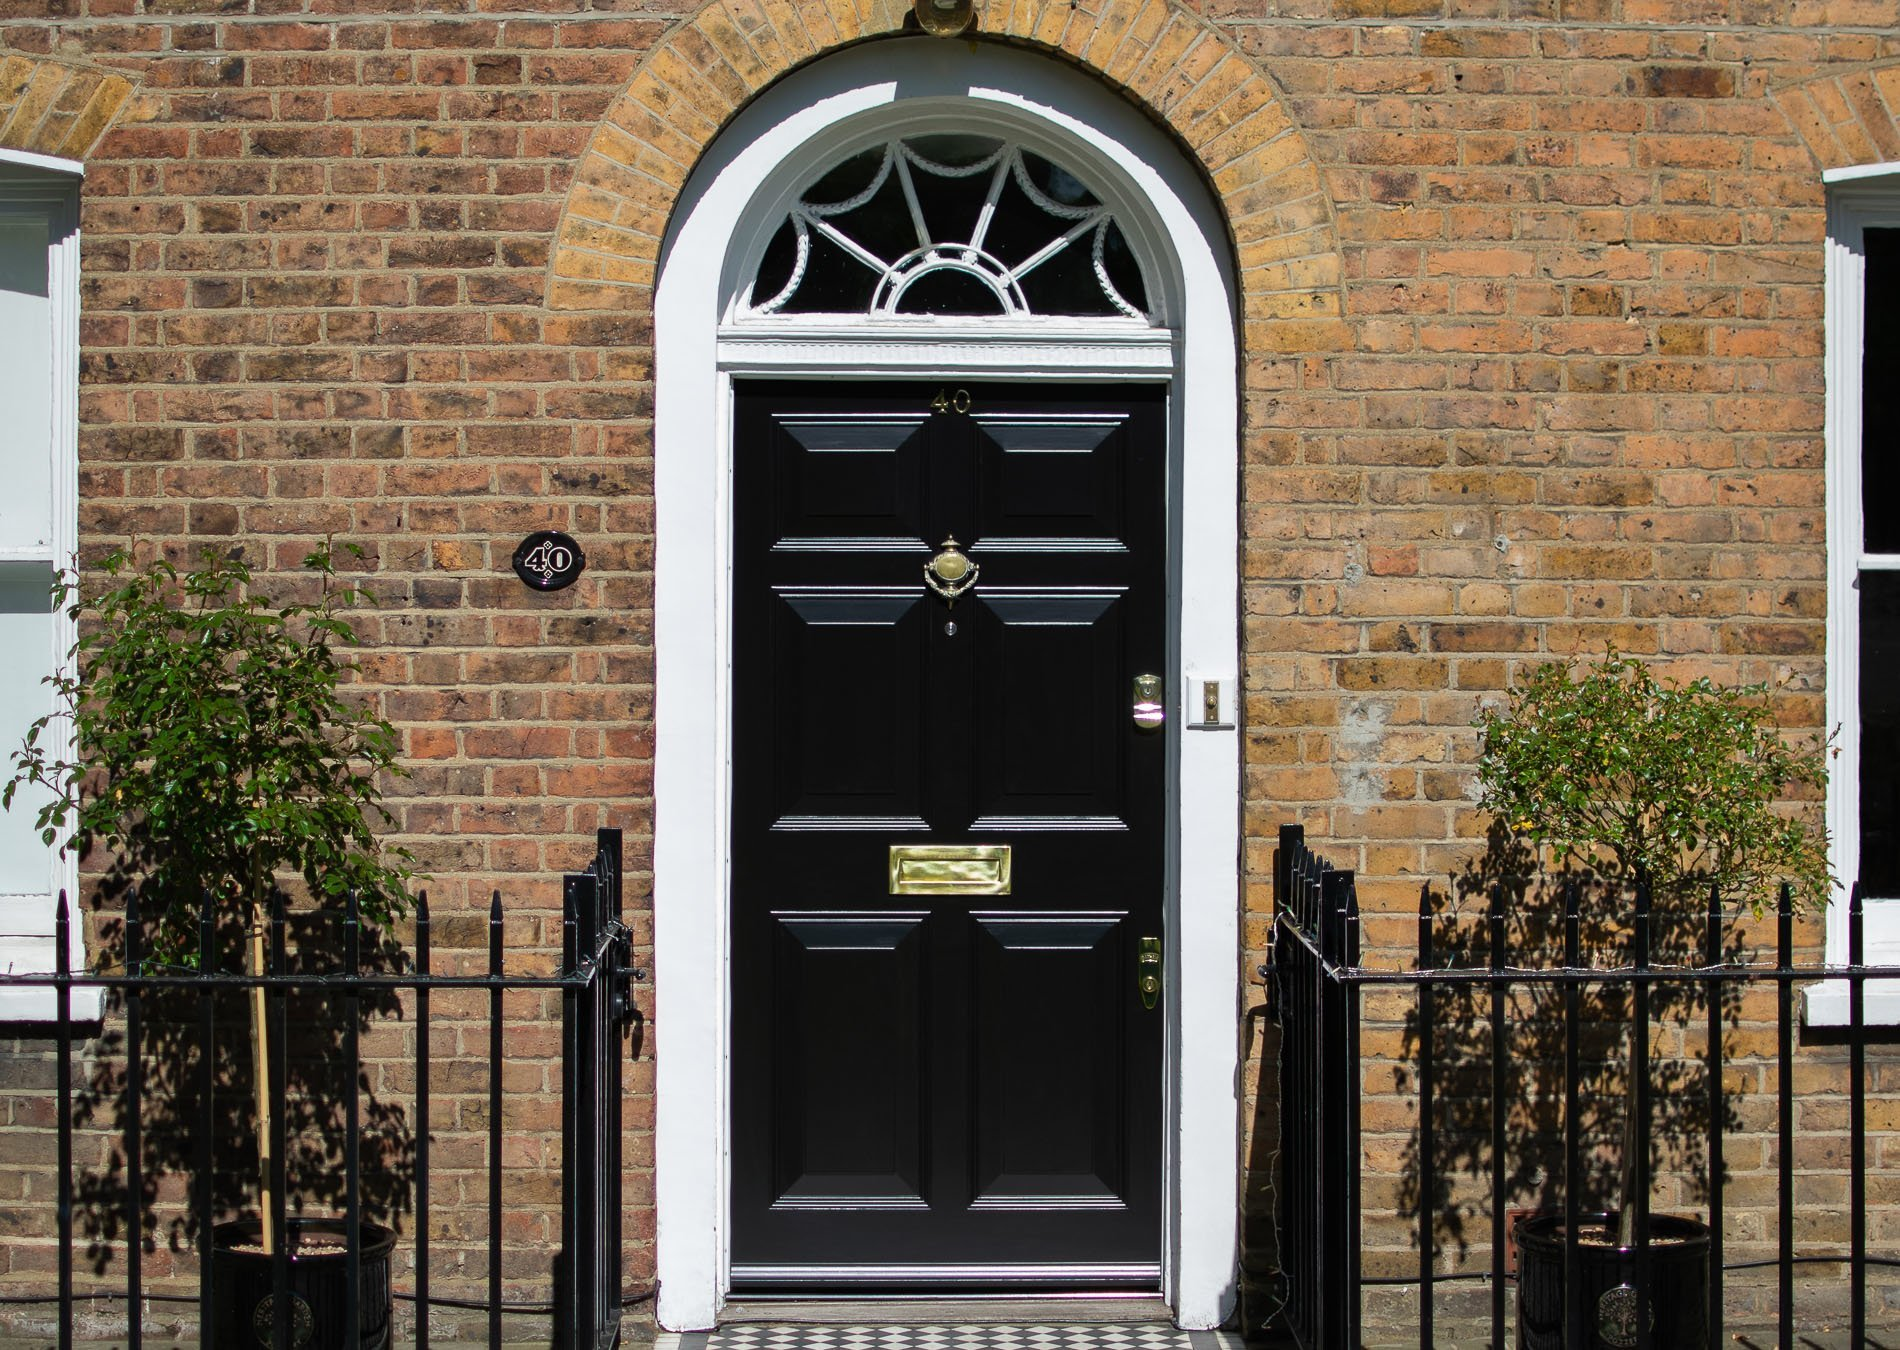 Georgian front door and fanlight door frame. Door painted black, frame painted white. Polished brass door funiture